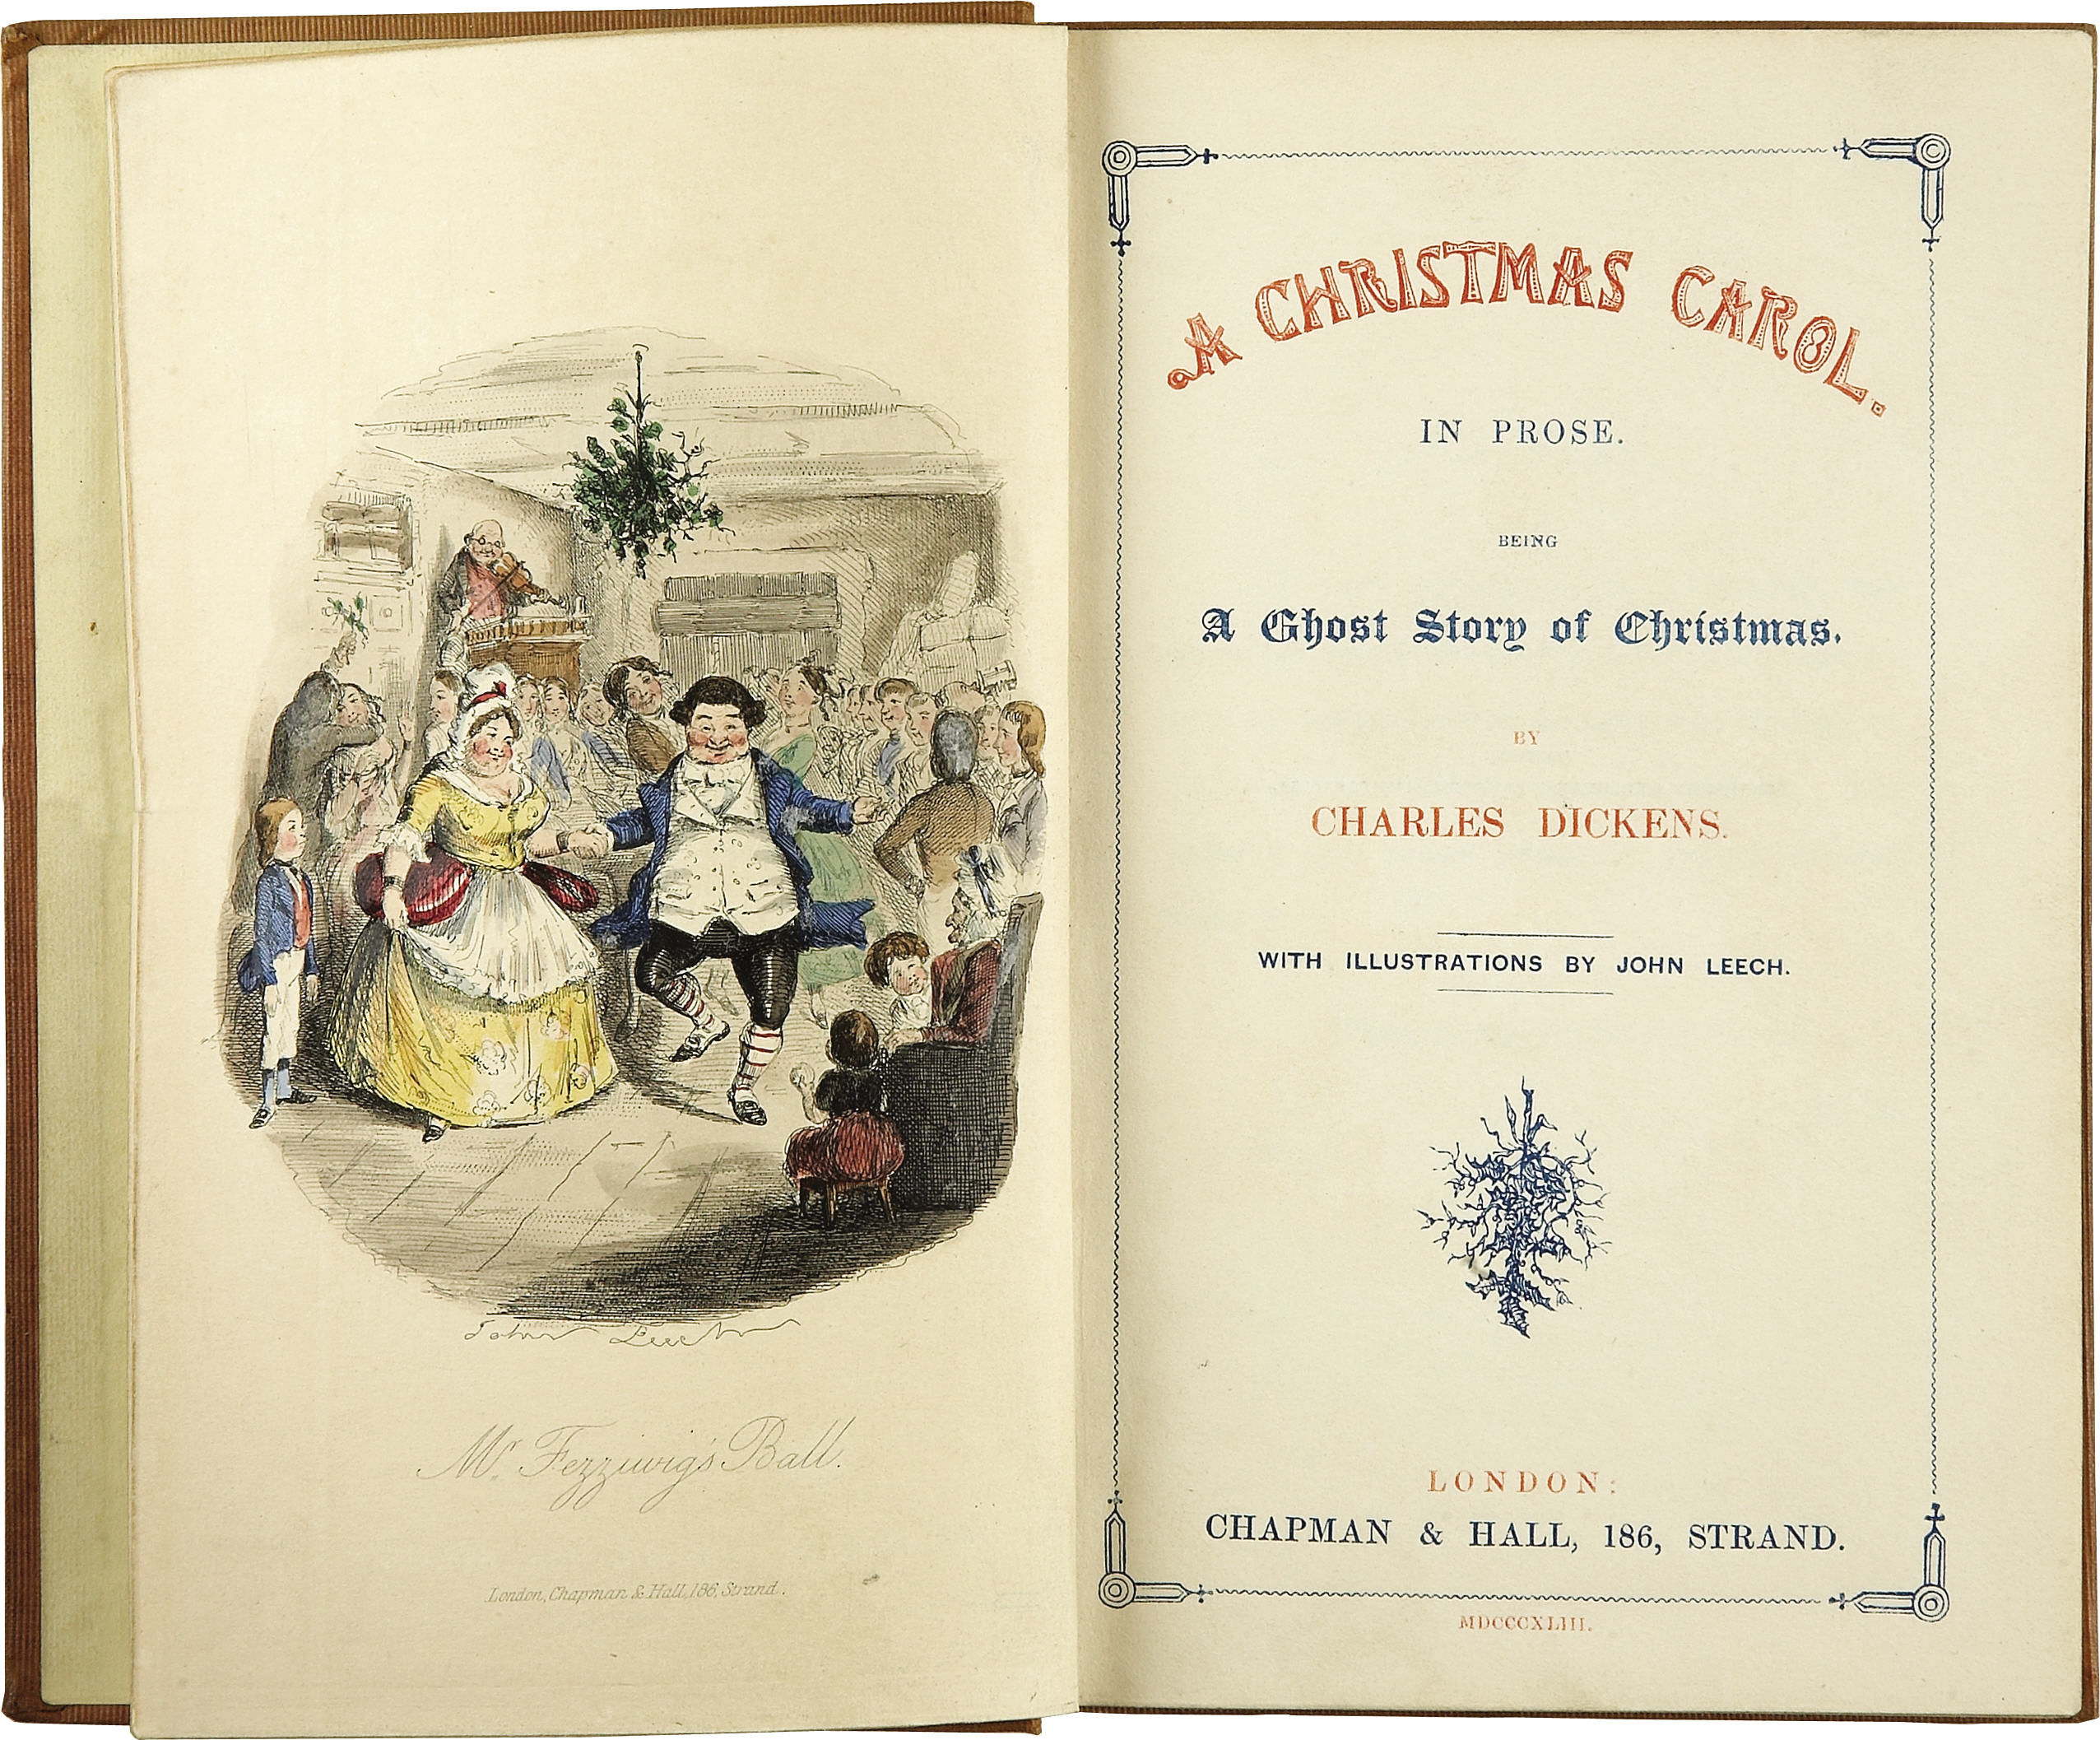 A christmas carol in prose,charles dickens~deluxe silk facs/1843.